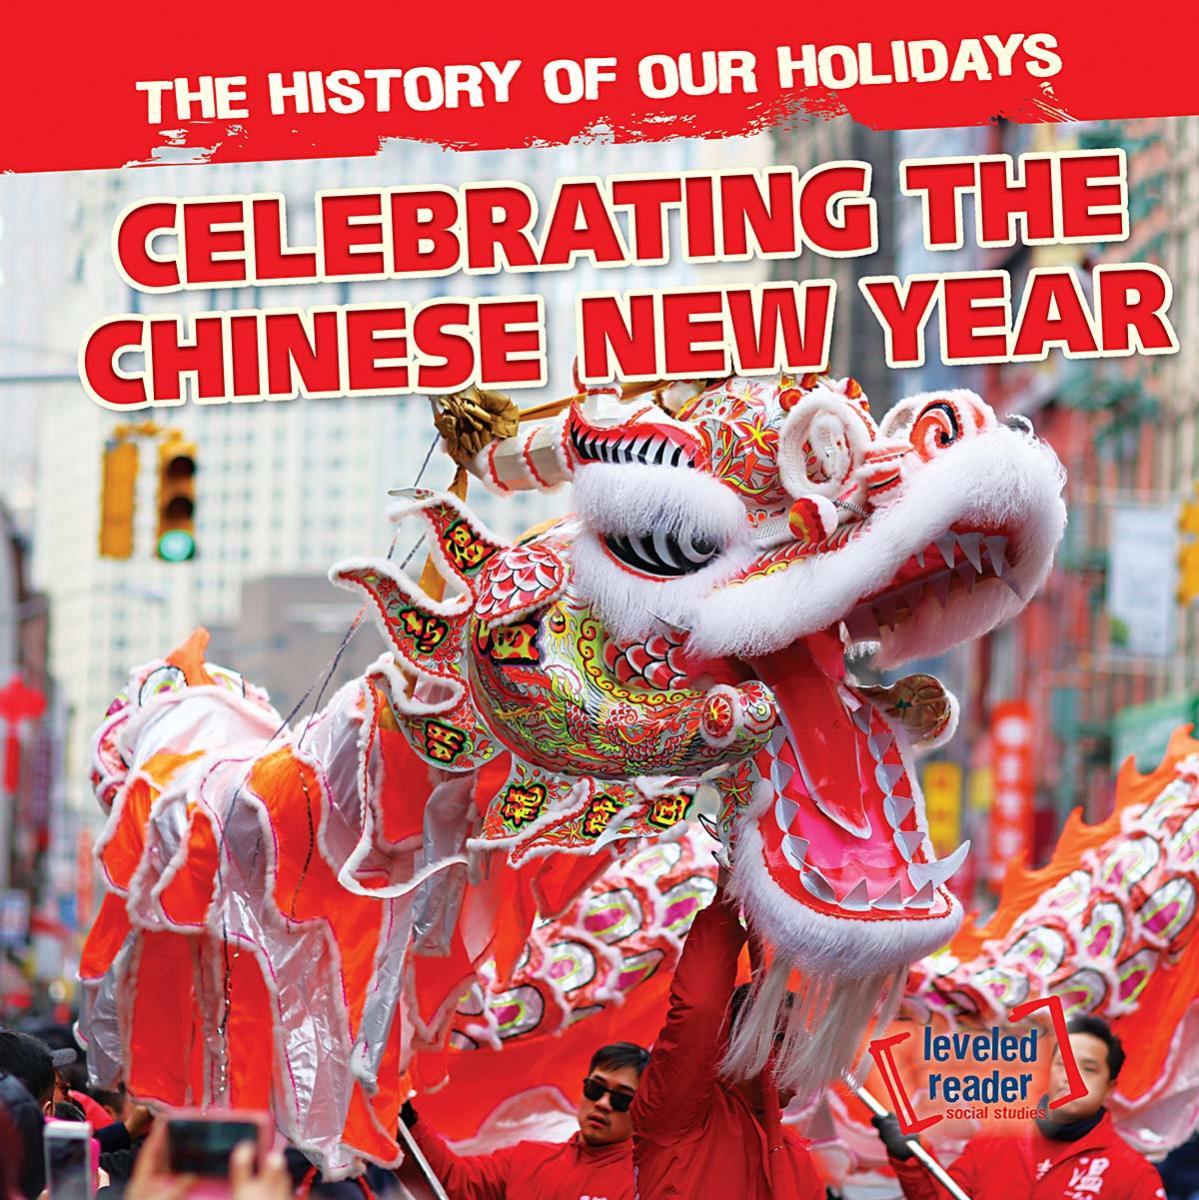 Celebrating the Chinese New Year by Barbara M. Linde